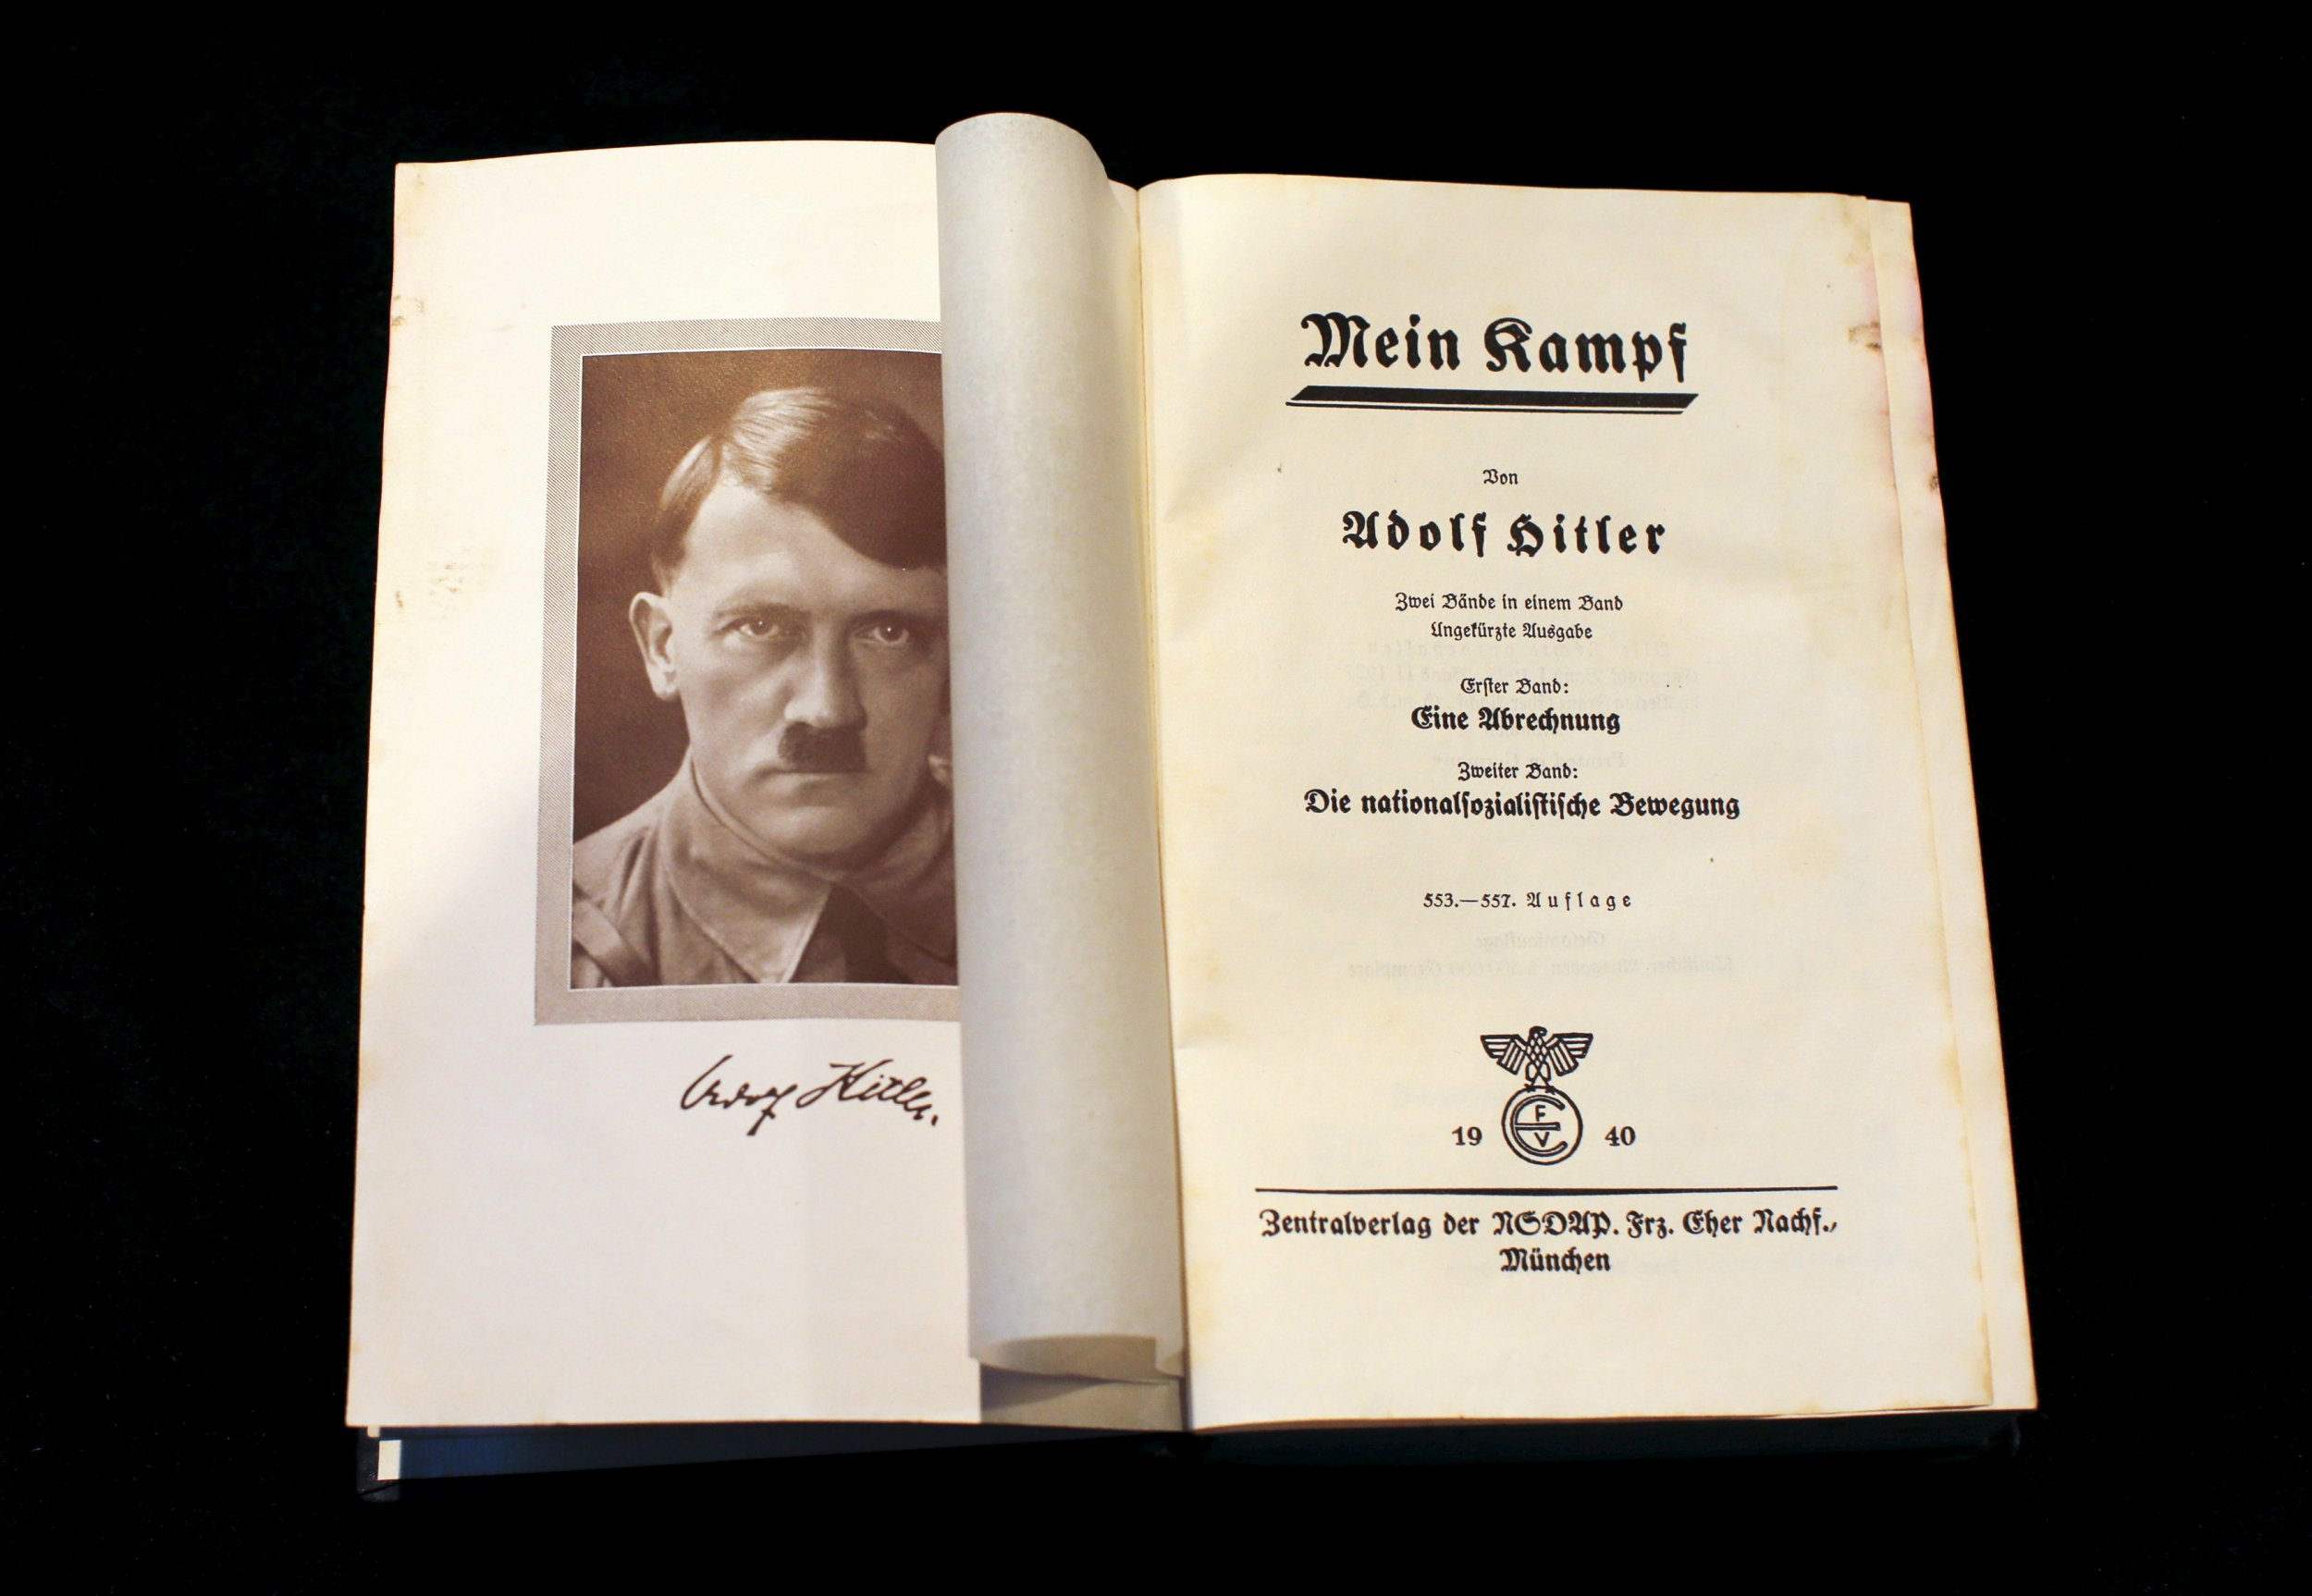 Mein kampf and the formation of